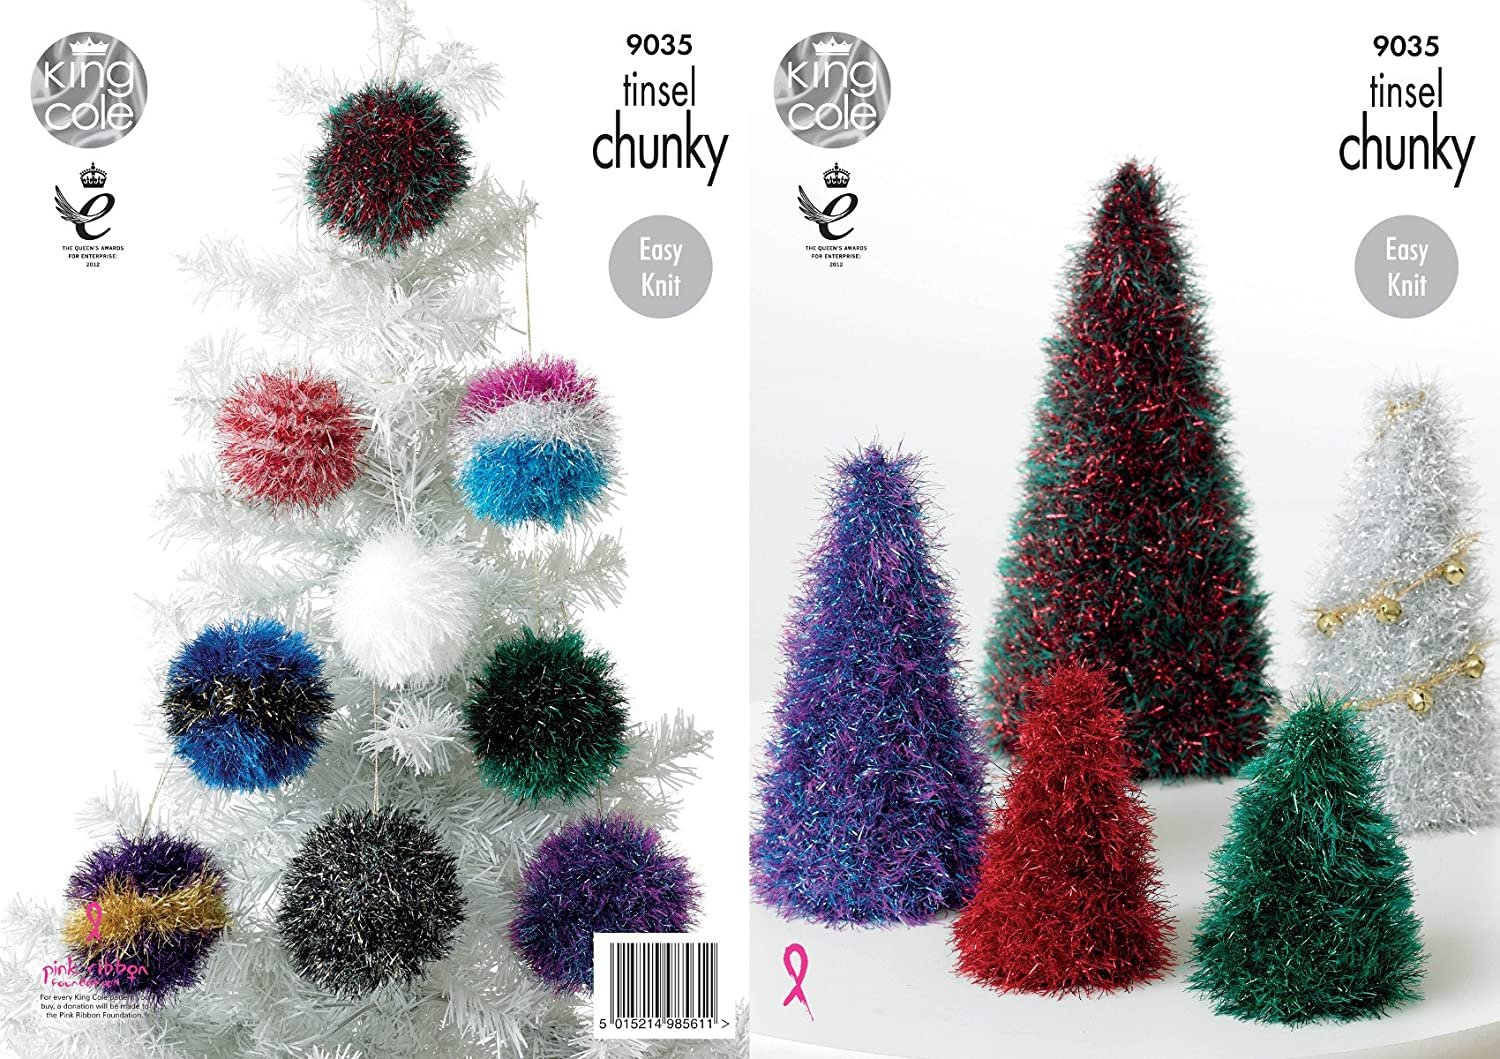 King cole 9035 knitting pattern tinsel christmas trees and baubles king cole 9035 knitting pattern tinsel christmas trees and baubles to knit in tinsel chunky amazon toys games bankloansurffo Images